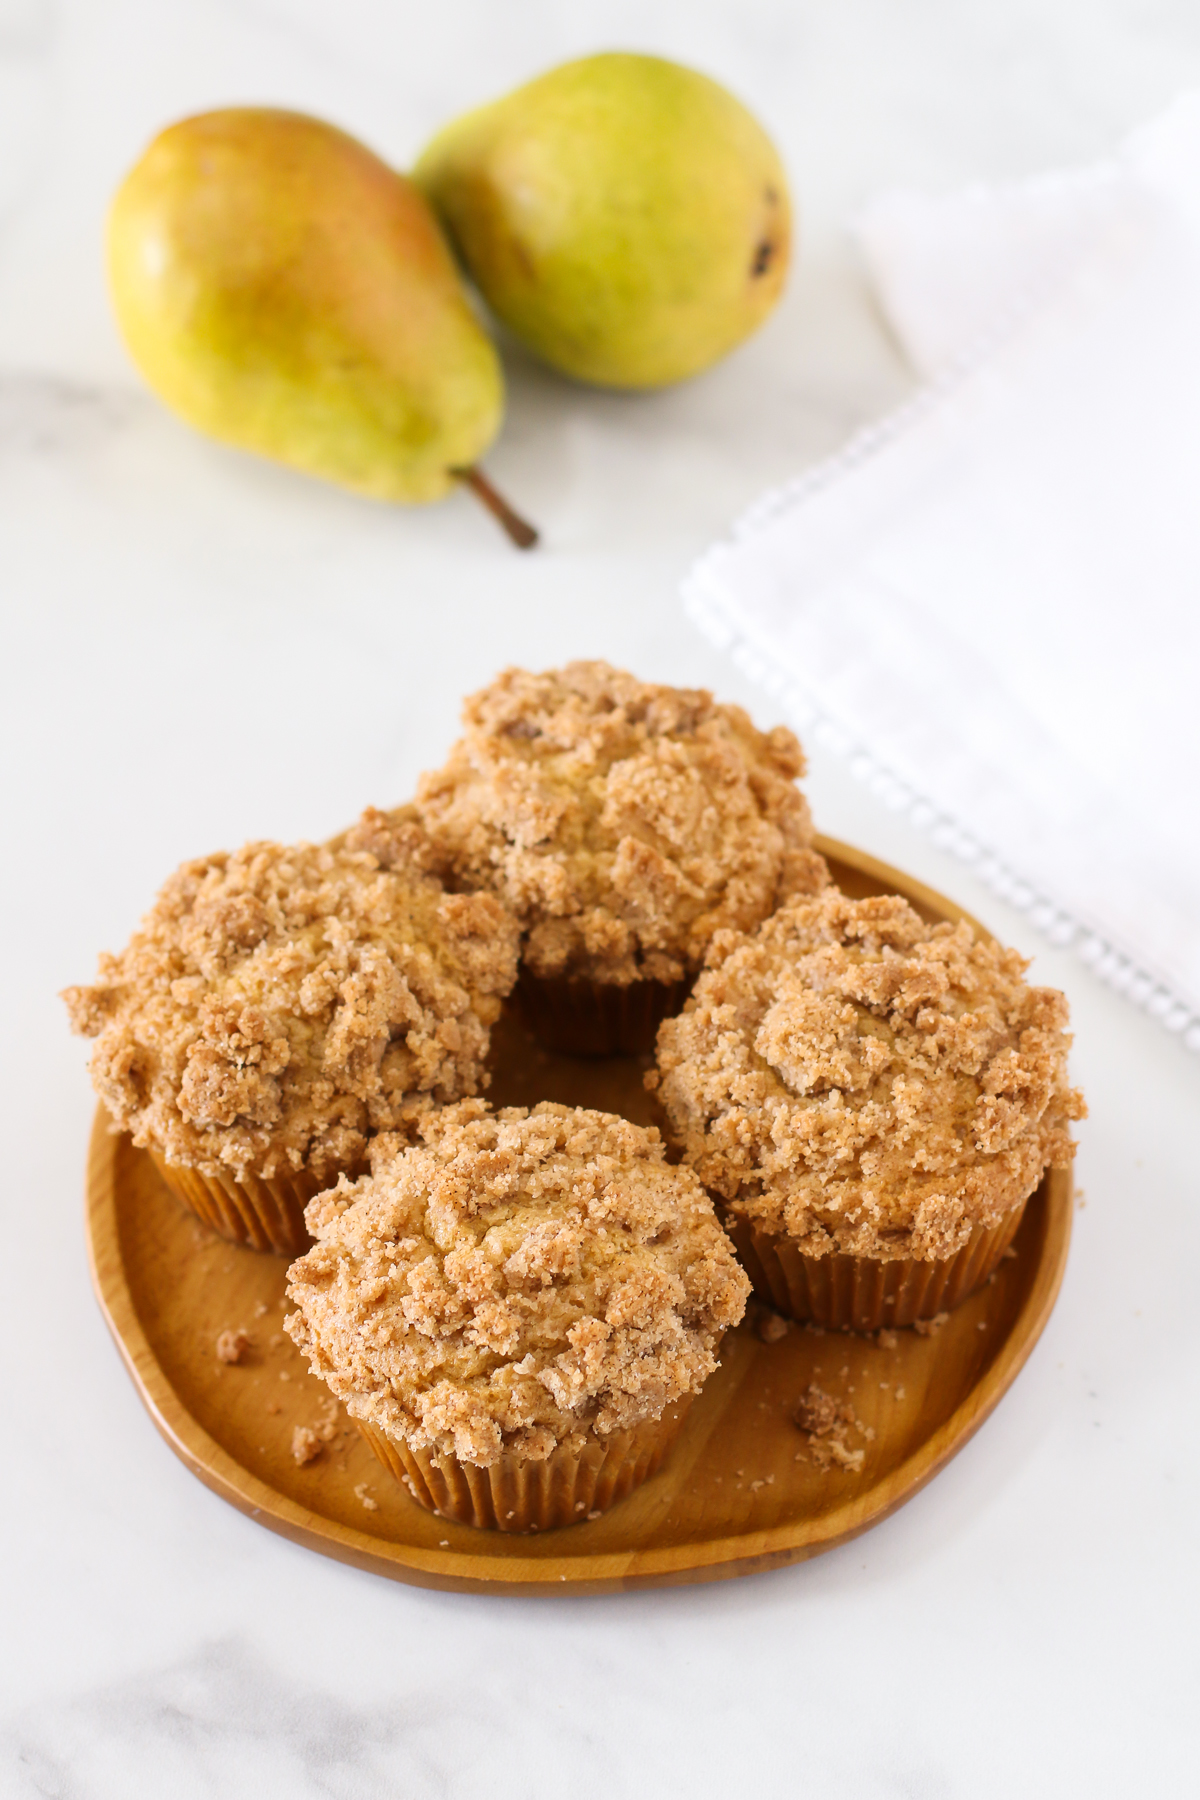 Gluten Free Vegan Pear Crumb Muffins. Tender, spiced muffins with diced fresh pears. A lovely fall breakfast treat!